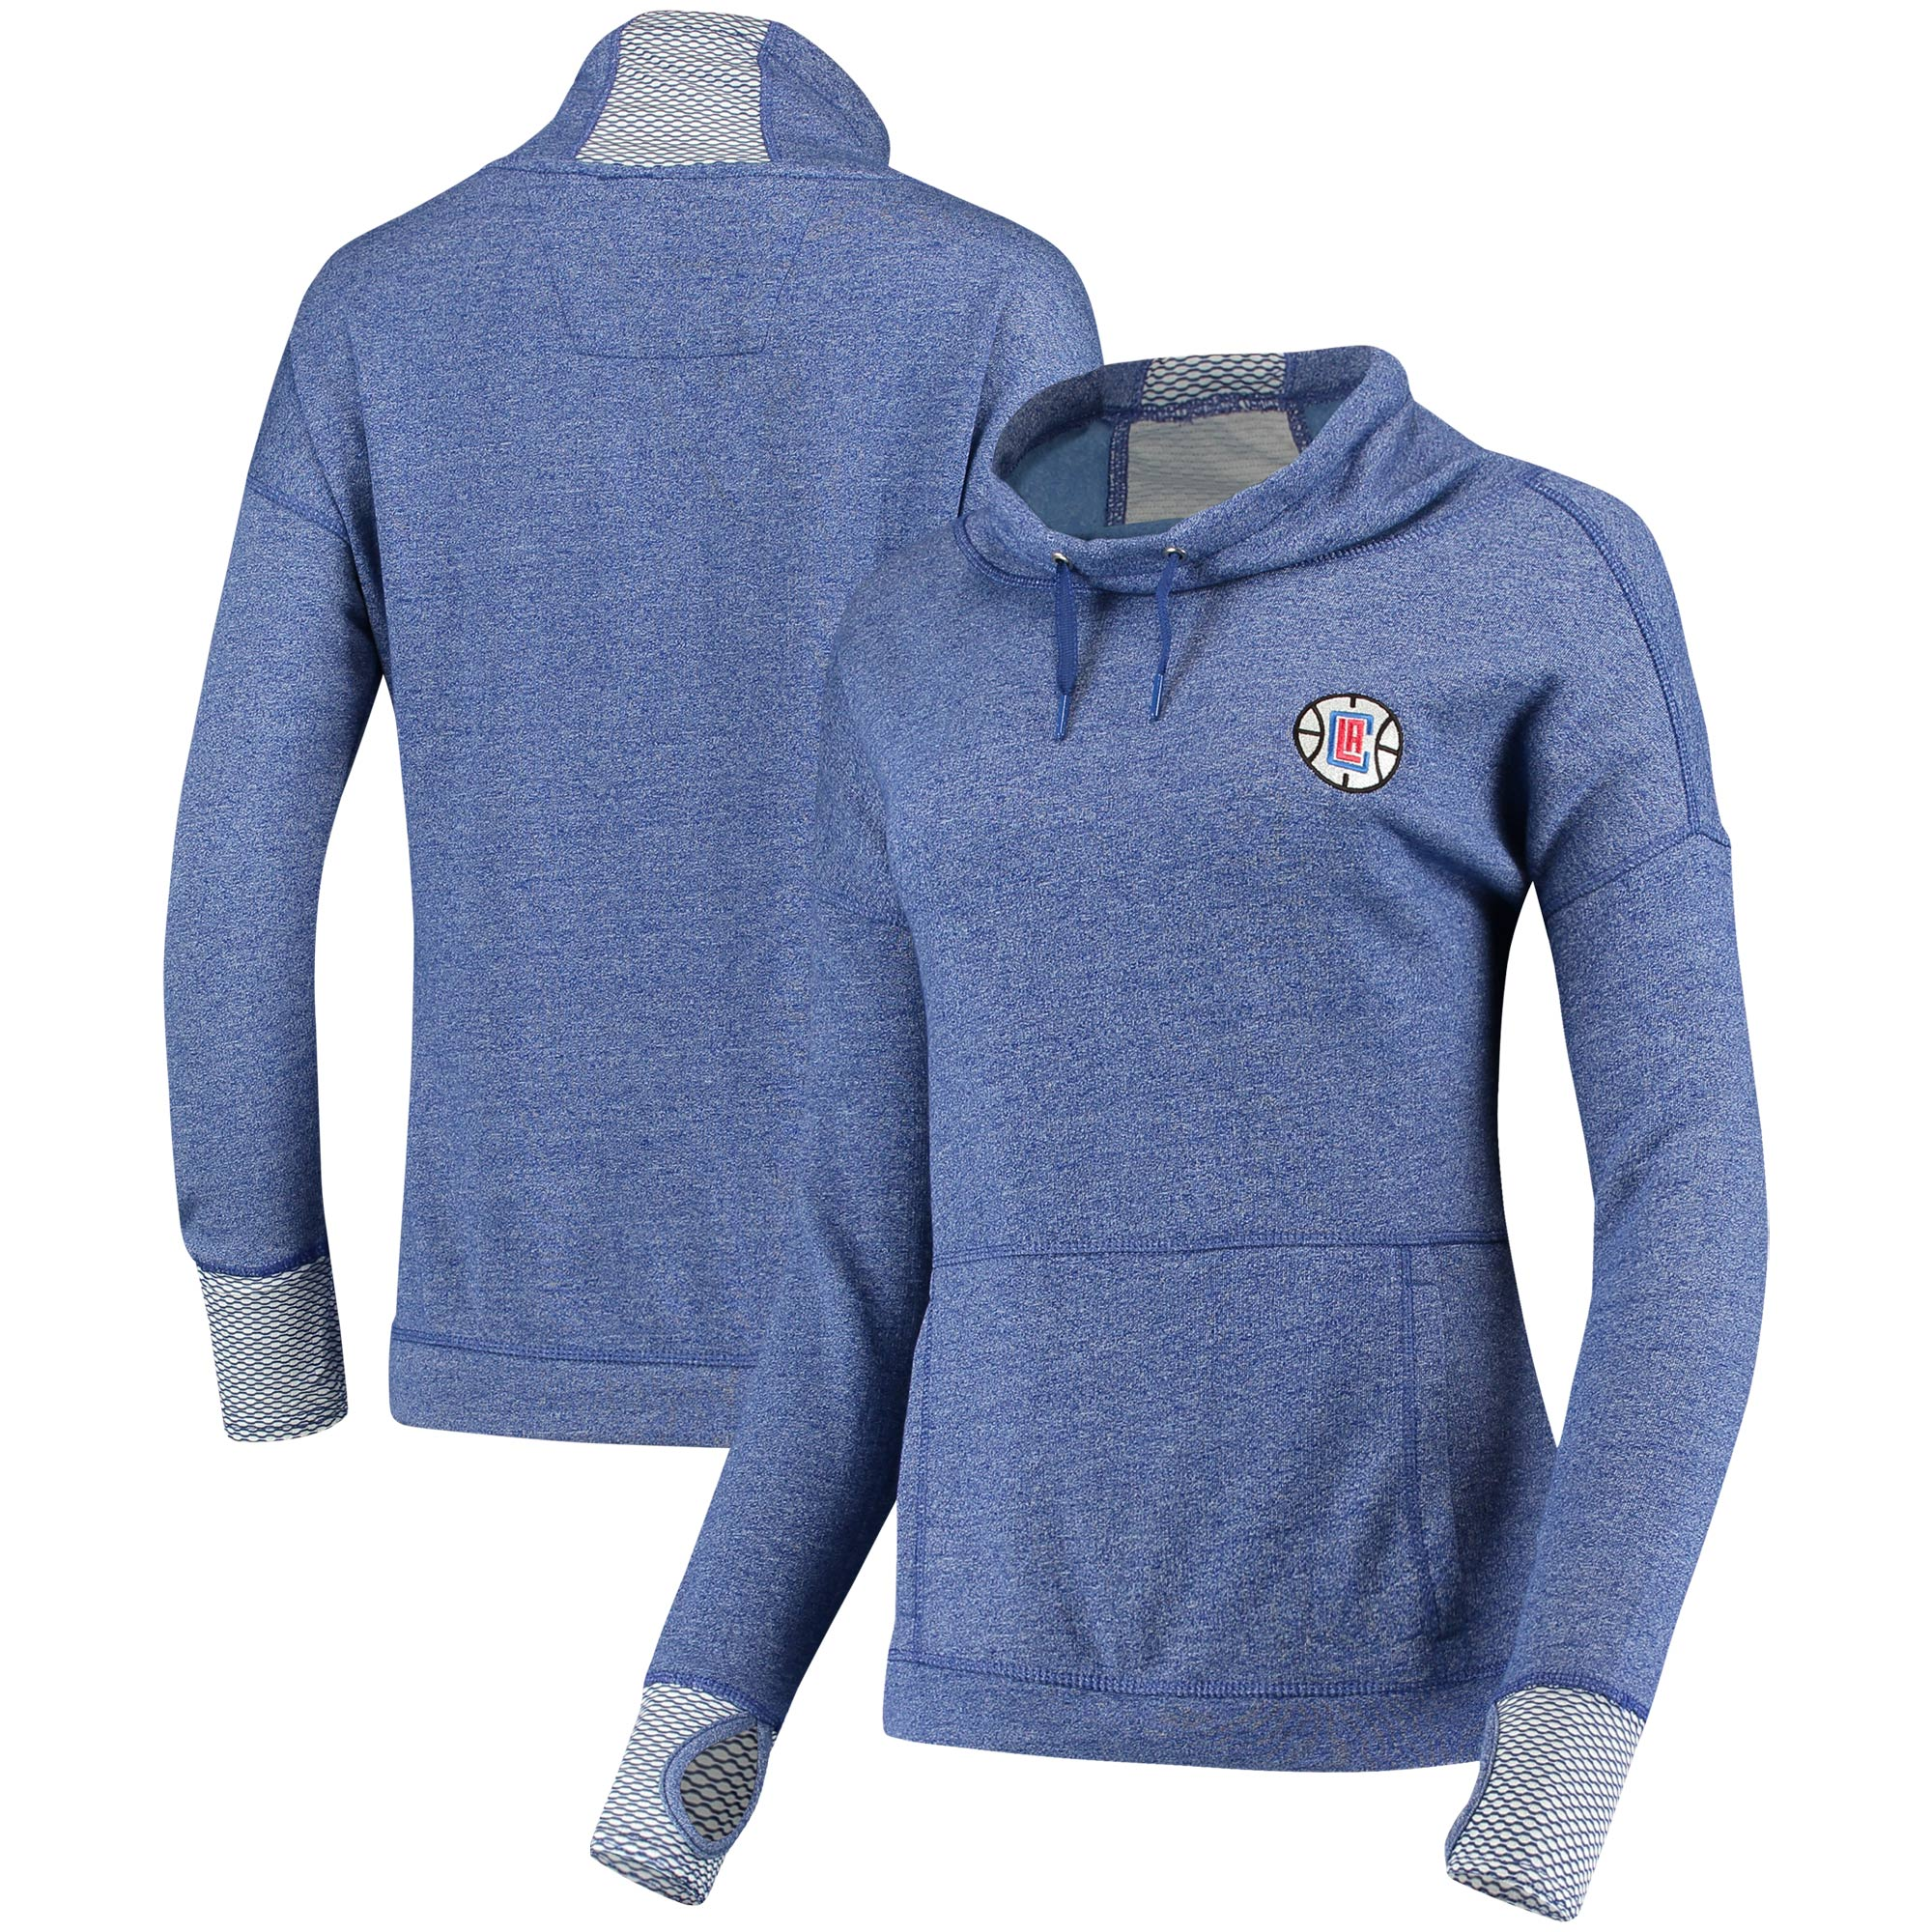 LA Clippers Antigua Women's Snap Cowl Neck Pullover Sweatshirt - Heathered Royal